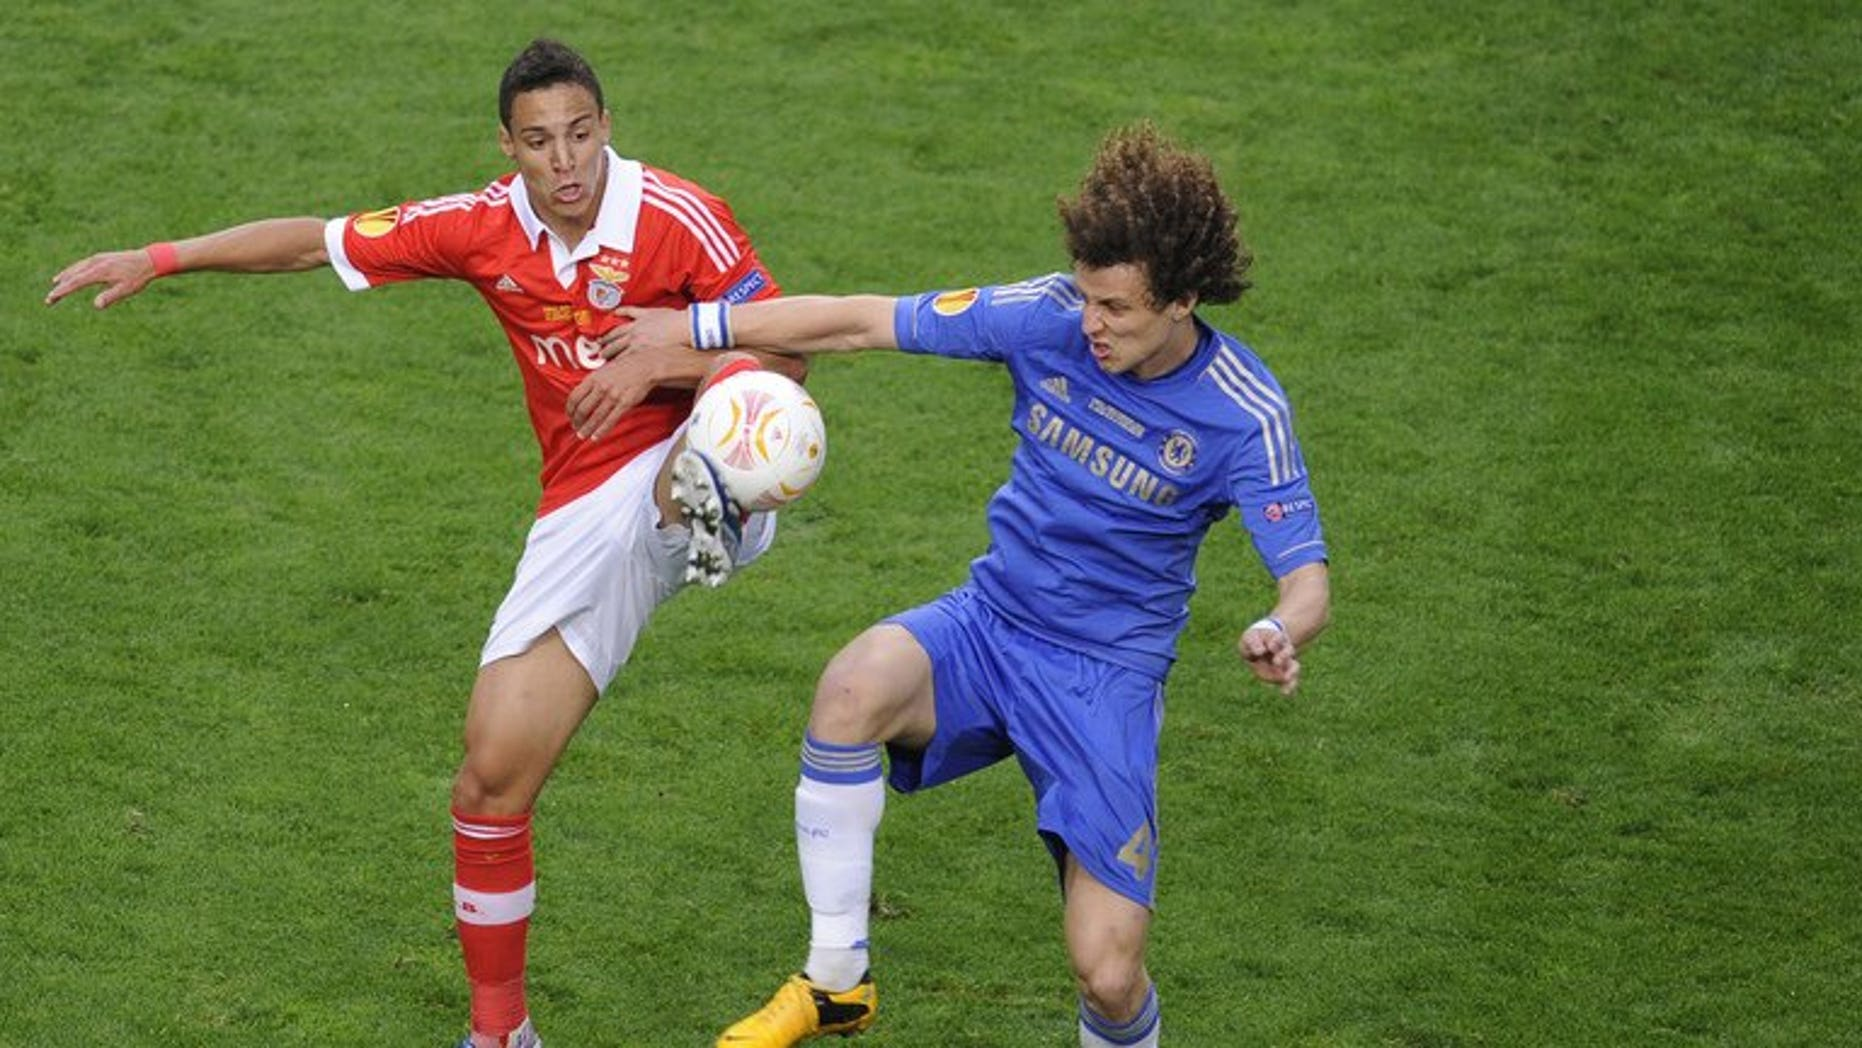 Benfica's Rodrigo (left) and Chelsea's defender David Luiz during the UEFA Europa League on May 15, 2013 in Amsterdam. Mourinho says there are no circumstances that would move the Premier League club to consider an offer for defender David Luiz.